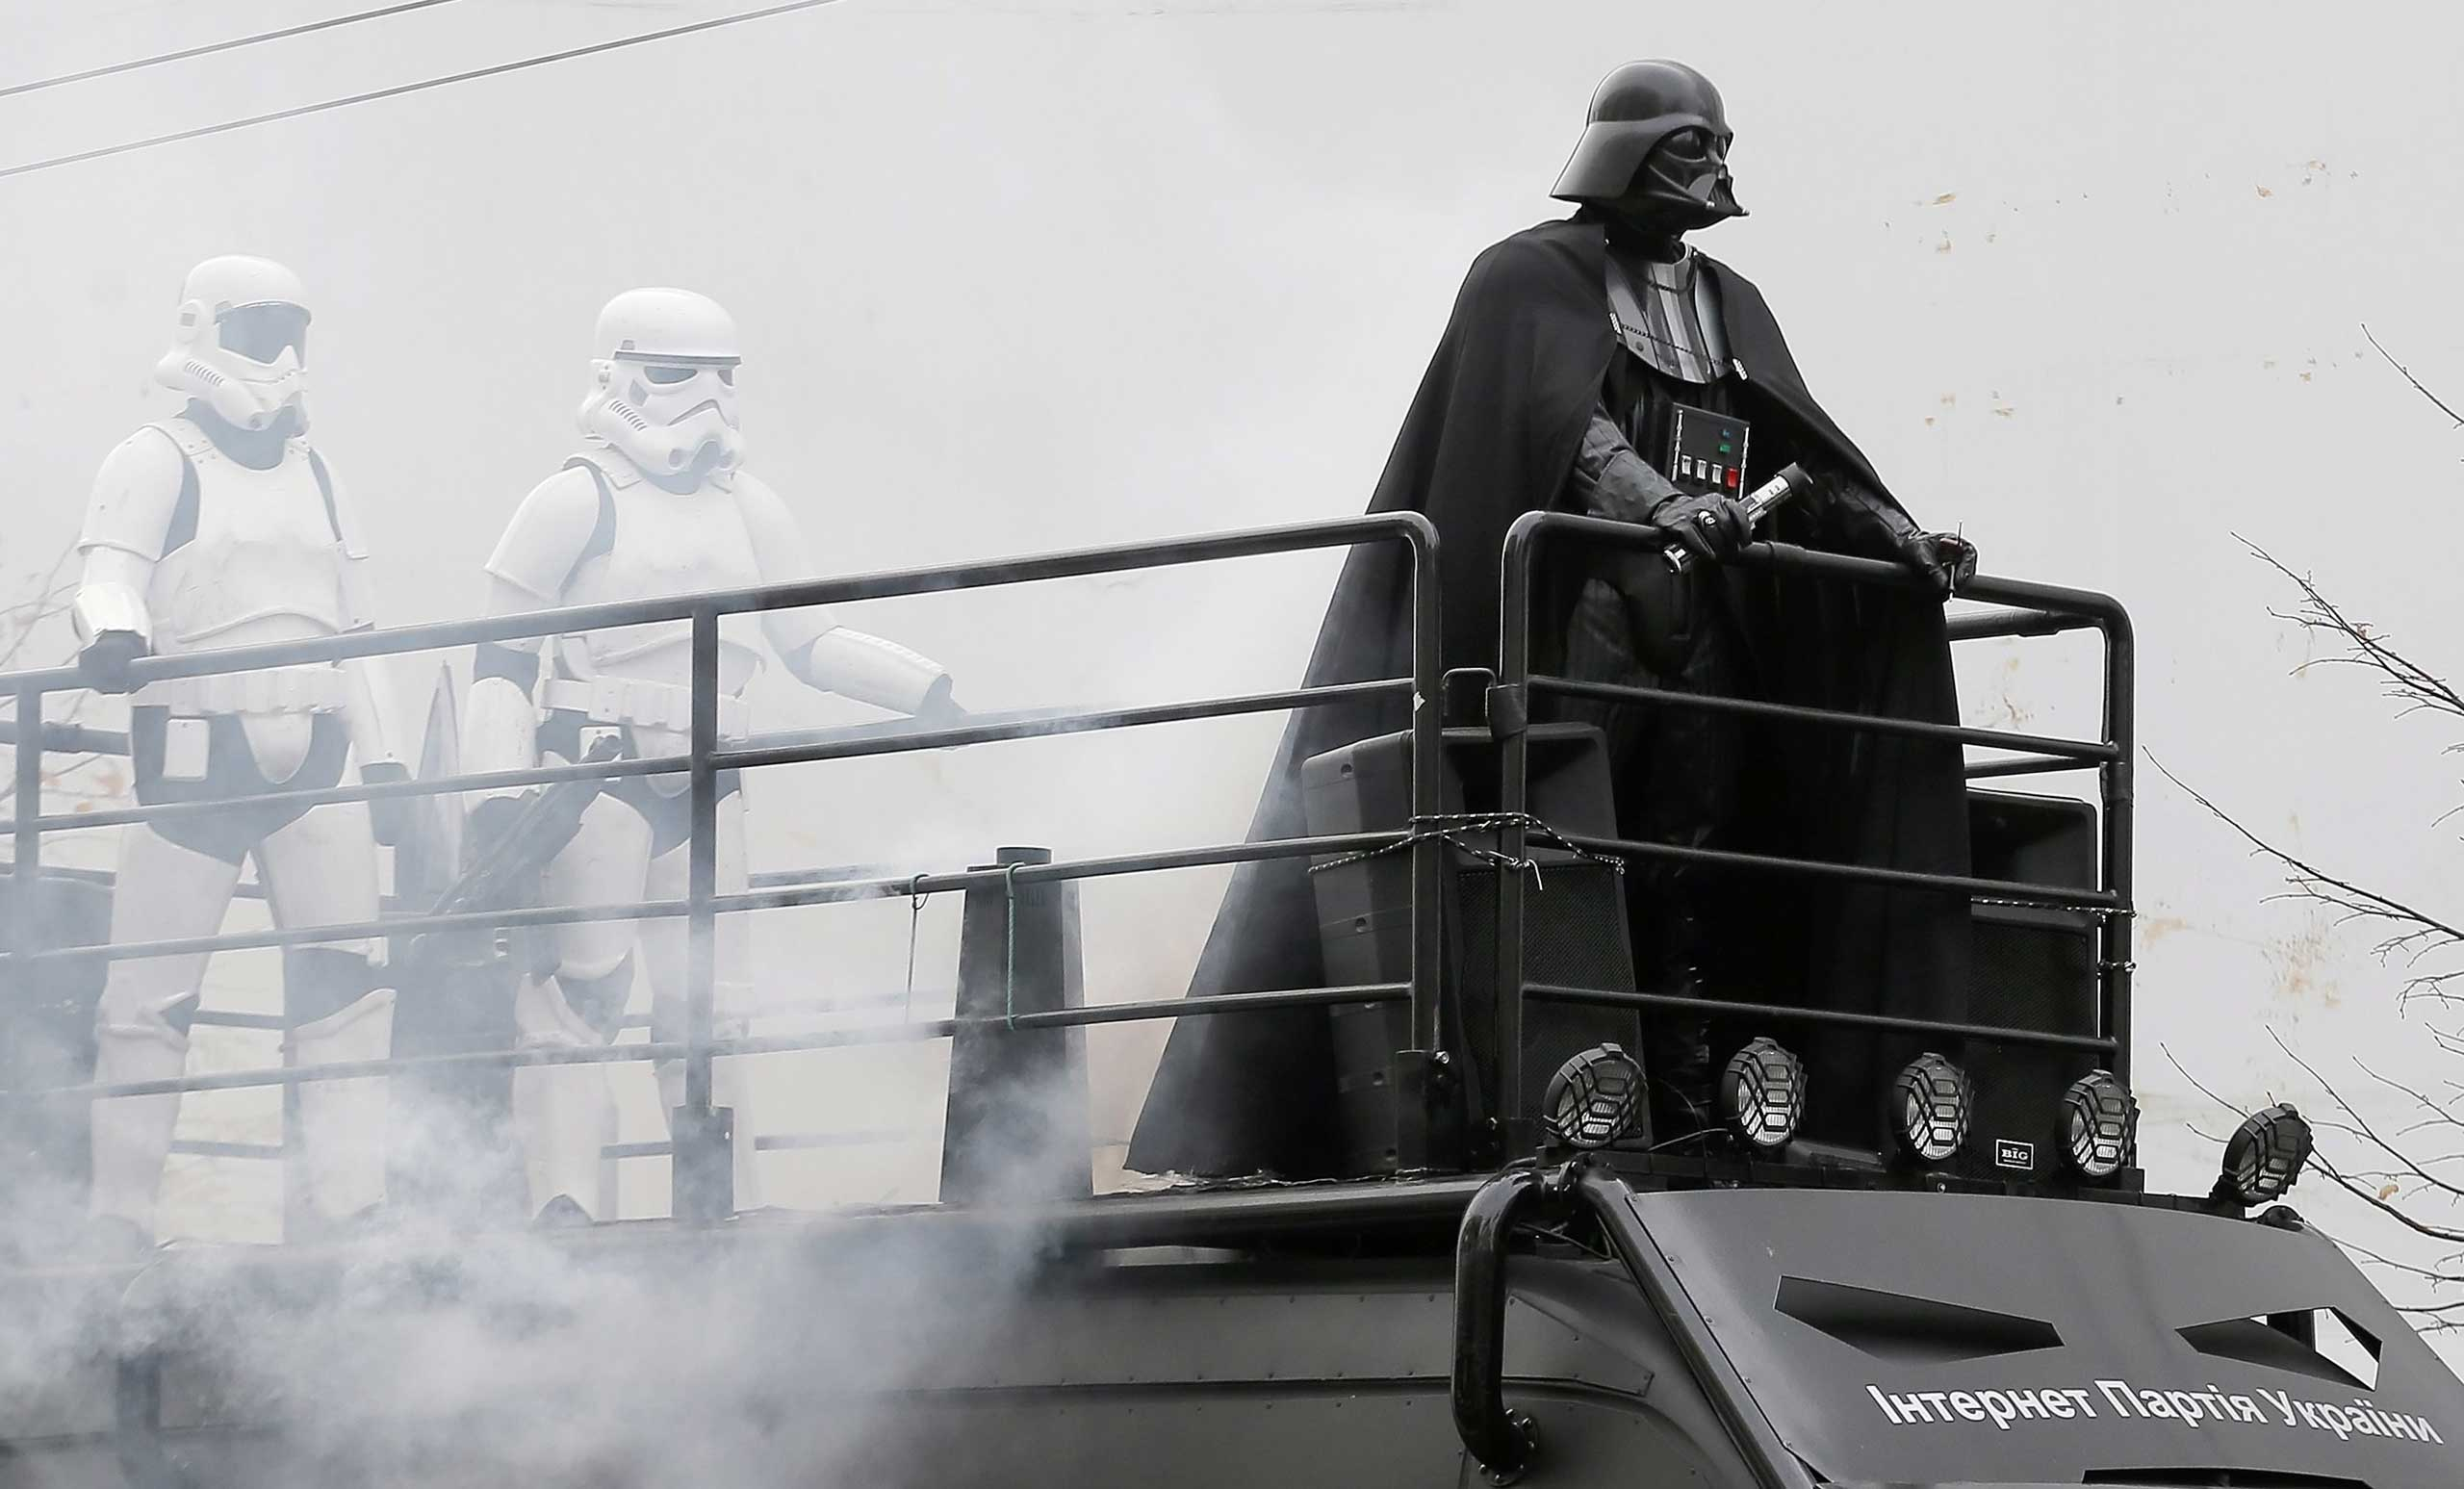 Oct. 21, 2014. Star Wars impersonators stand on the roof of a campaign van during an election event of the Ukrainian Internet Party, in downtown Kiev, Ukraine.